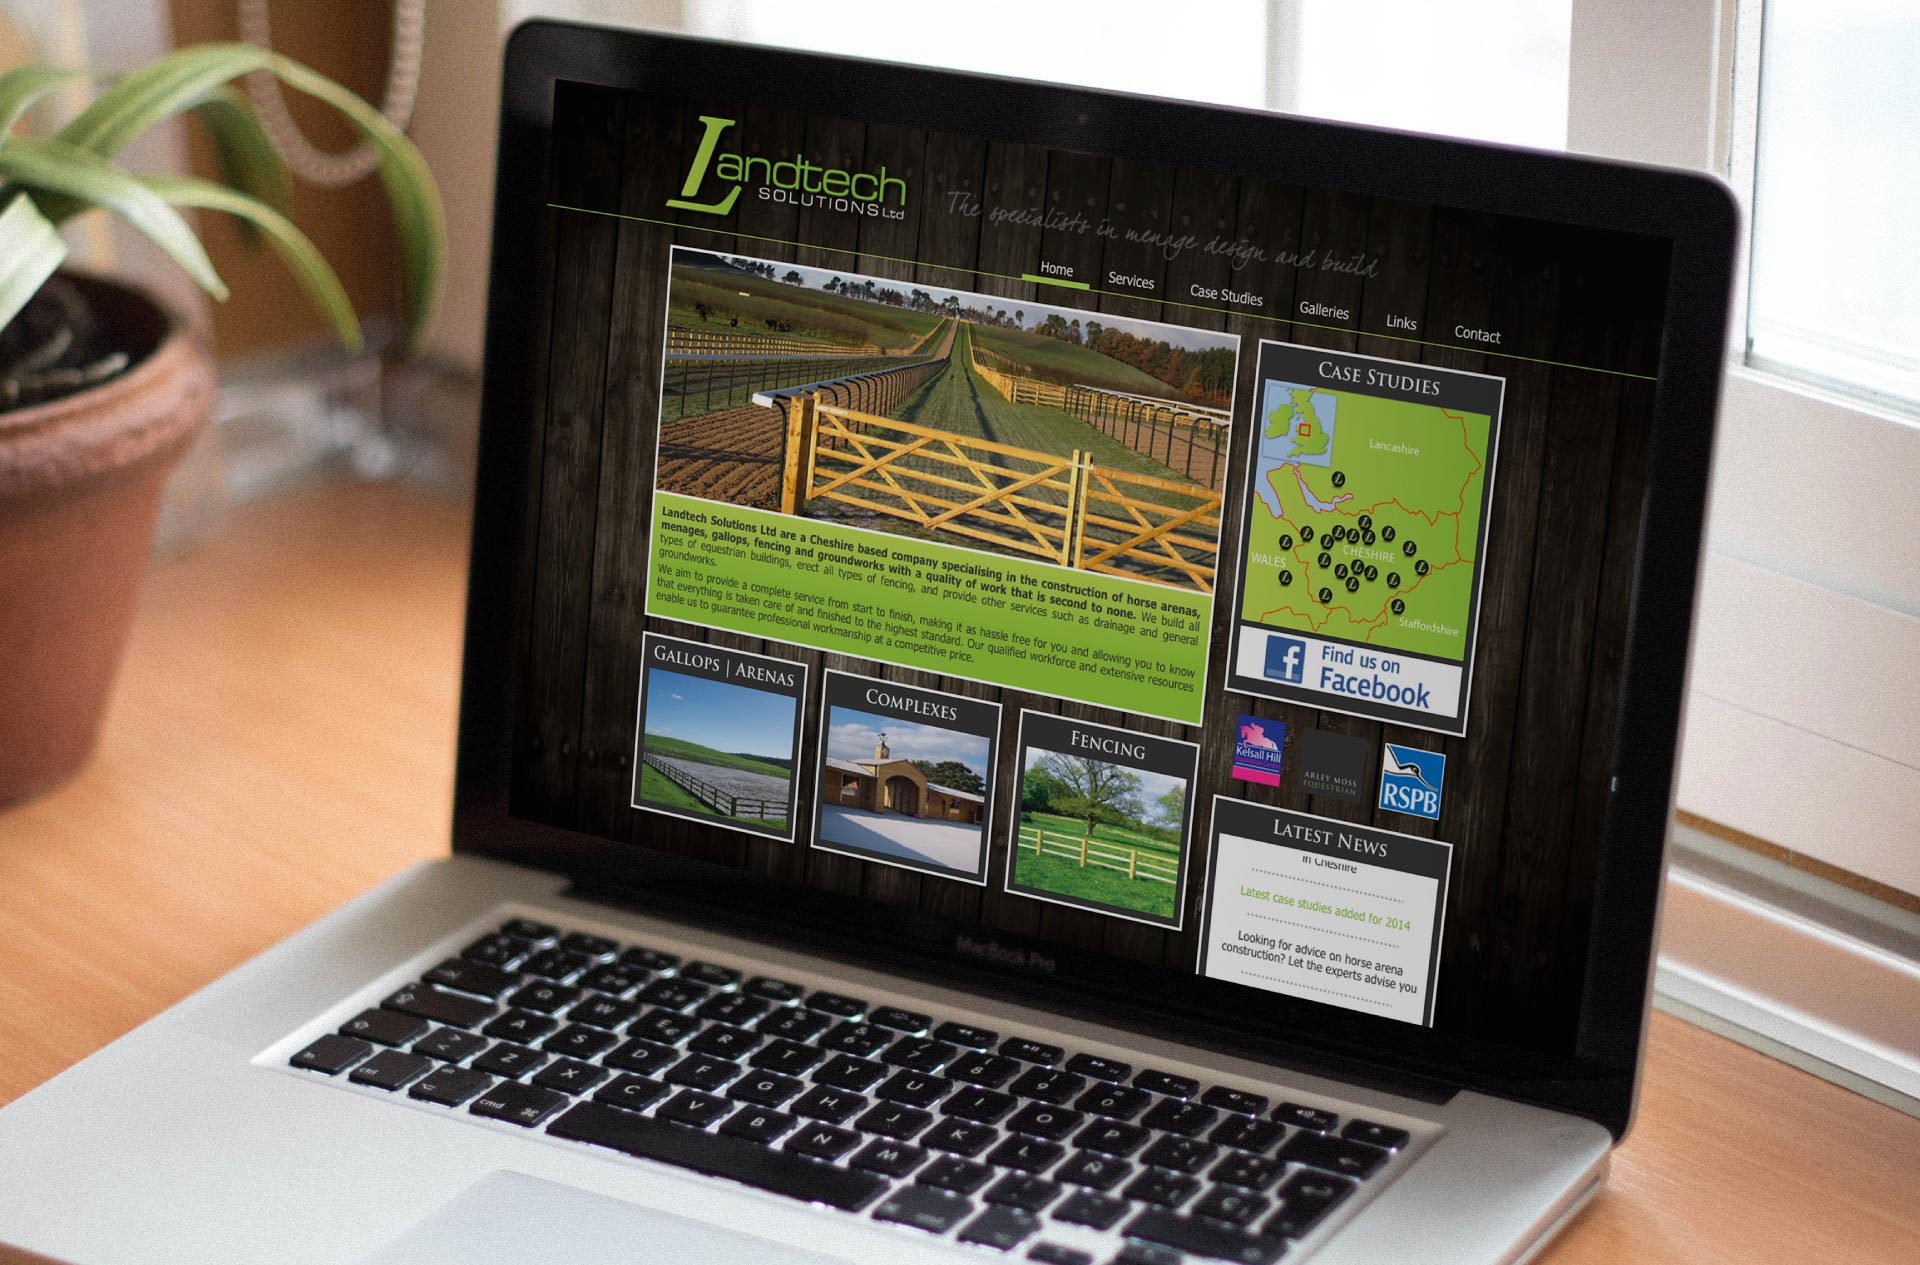 Web design for Landtech Solutions, Cheshire